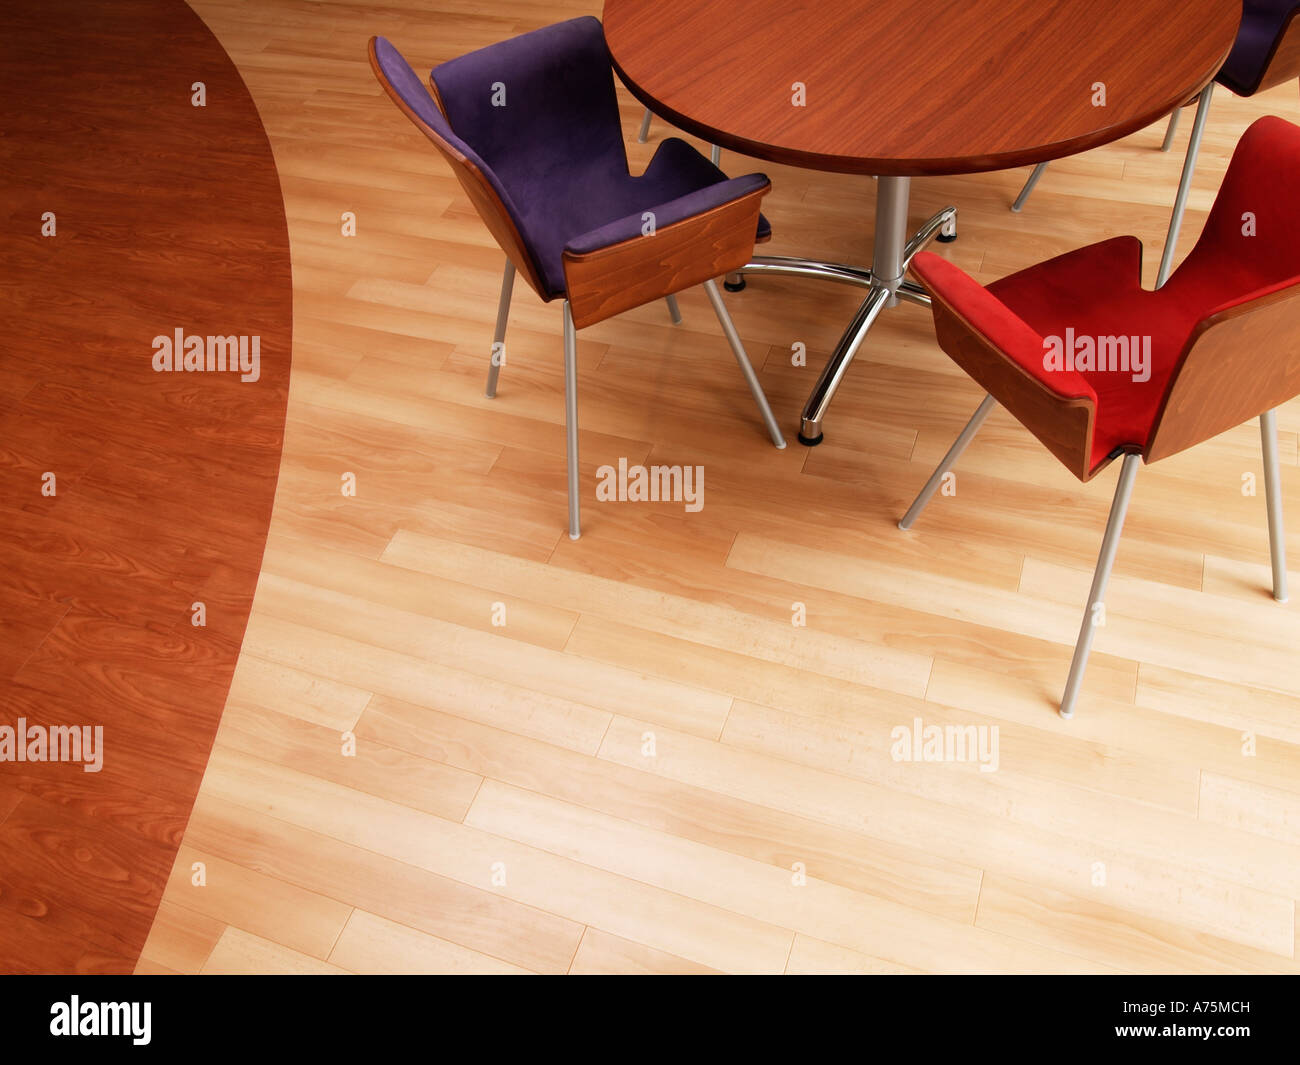 Birds eye view of round wooden table with modern design chairs on parquet floor made of two kinds of wood - Stock Image